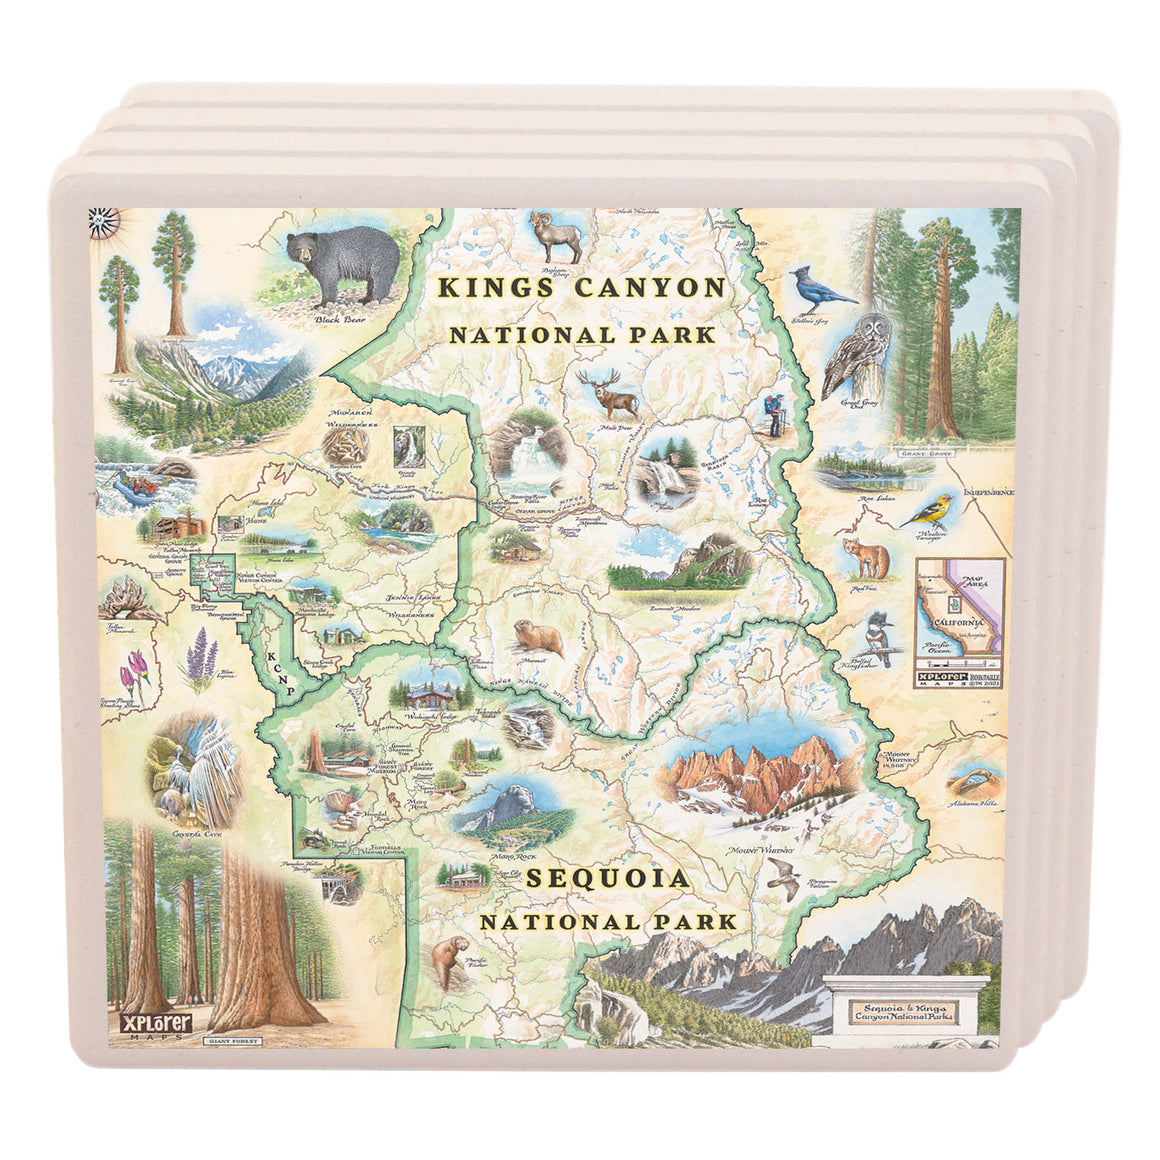 Sequoia & Kings Canyon Ceramic Coasters